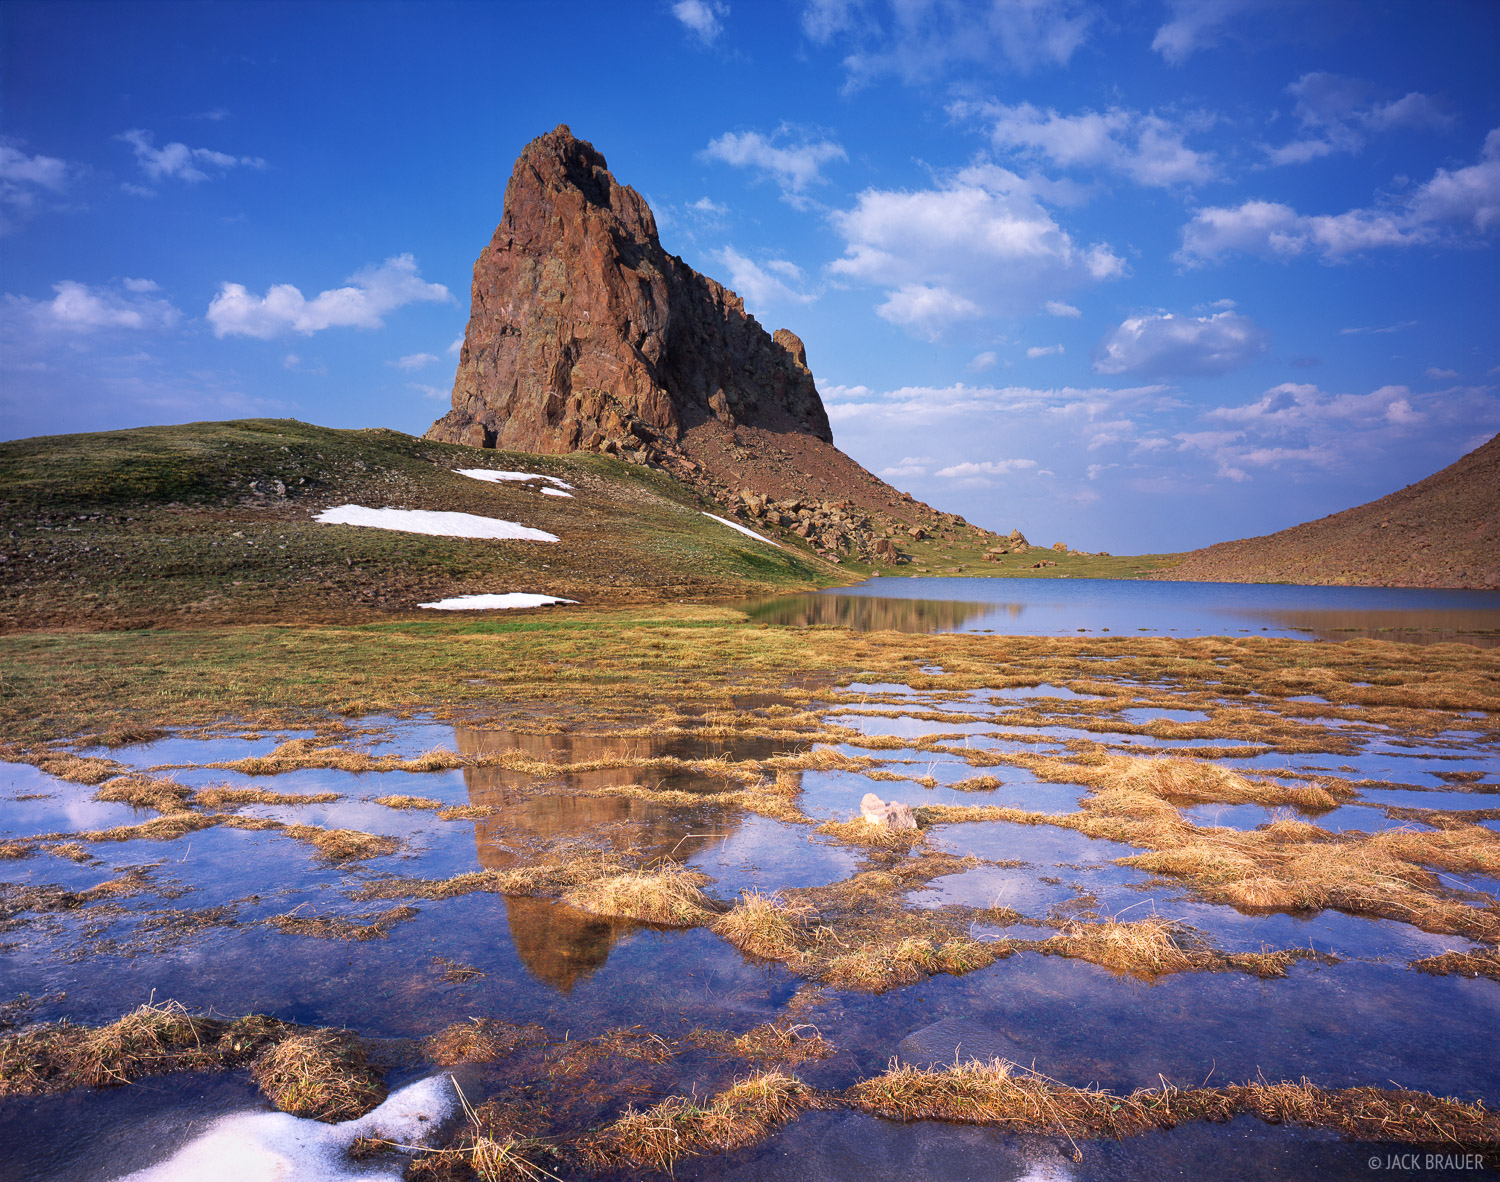 Tundra Mirrors, Uncompahgre Wilderness, San Juan Mountains, Colorado, photo